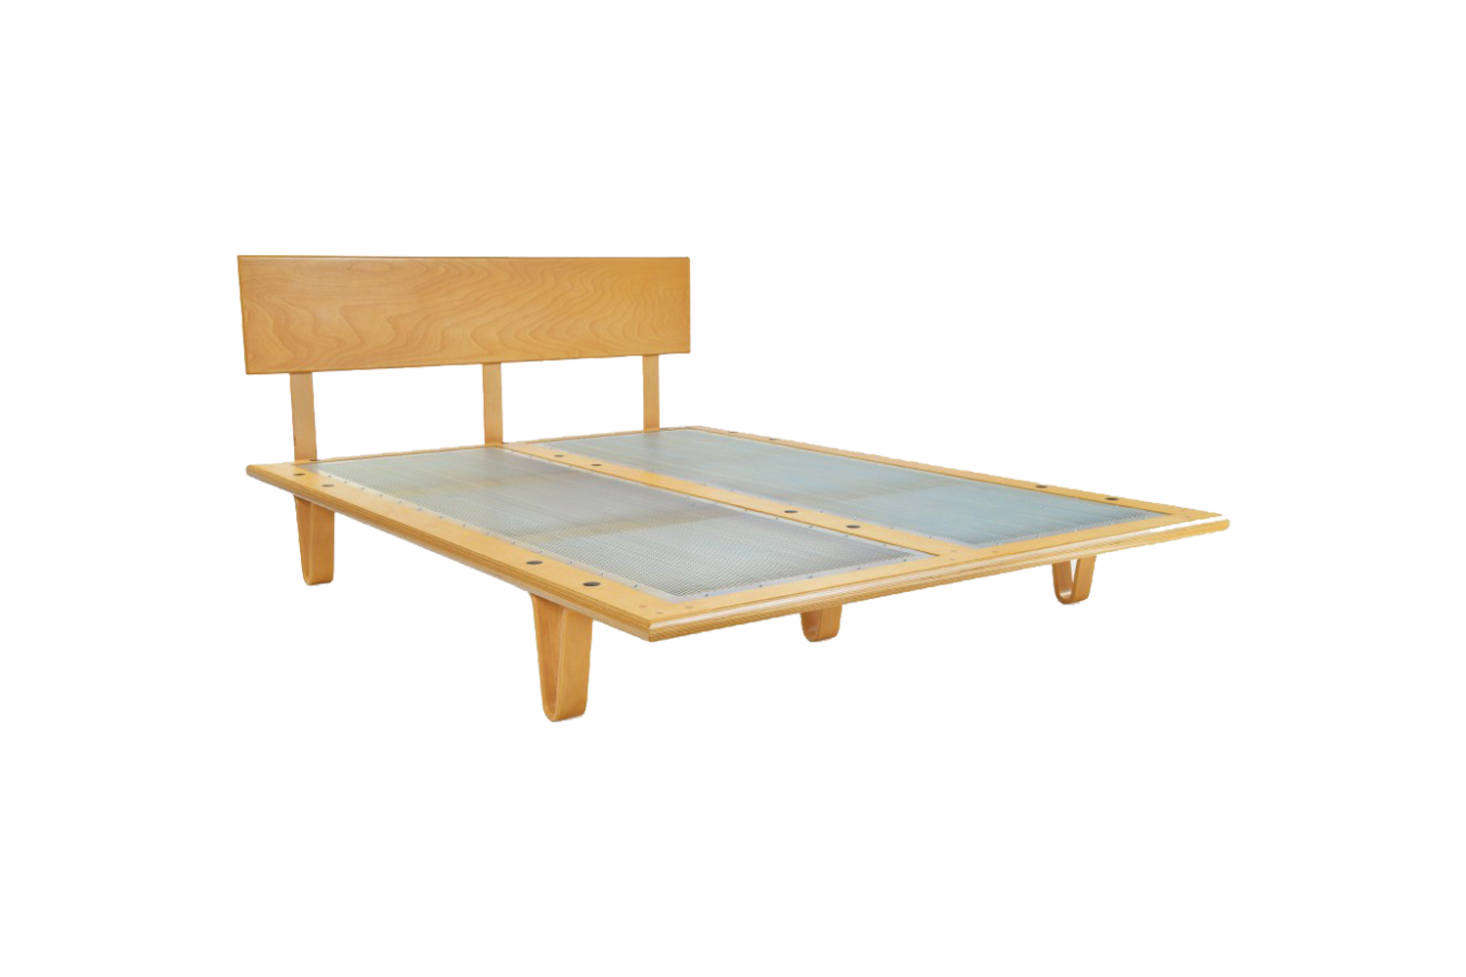 The bed frame is the Case Study Bentwood Bed in Classic Stain from Modernica; $src=